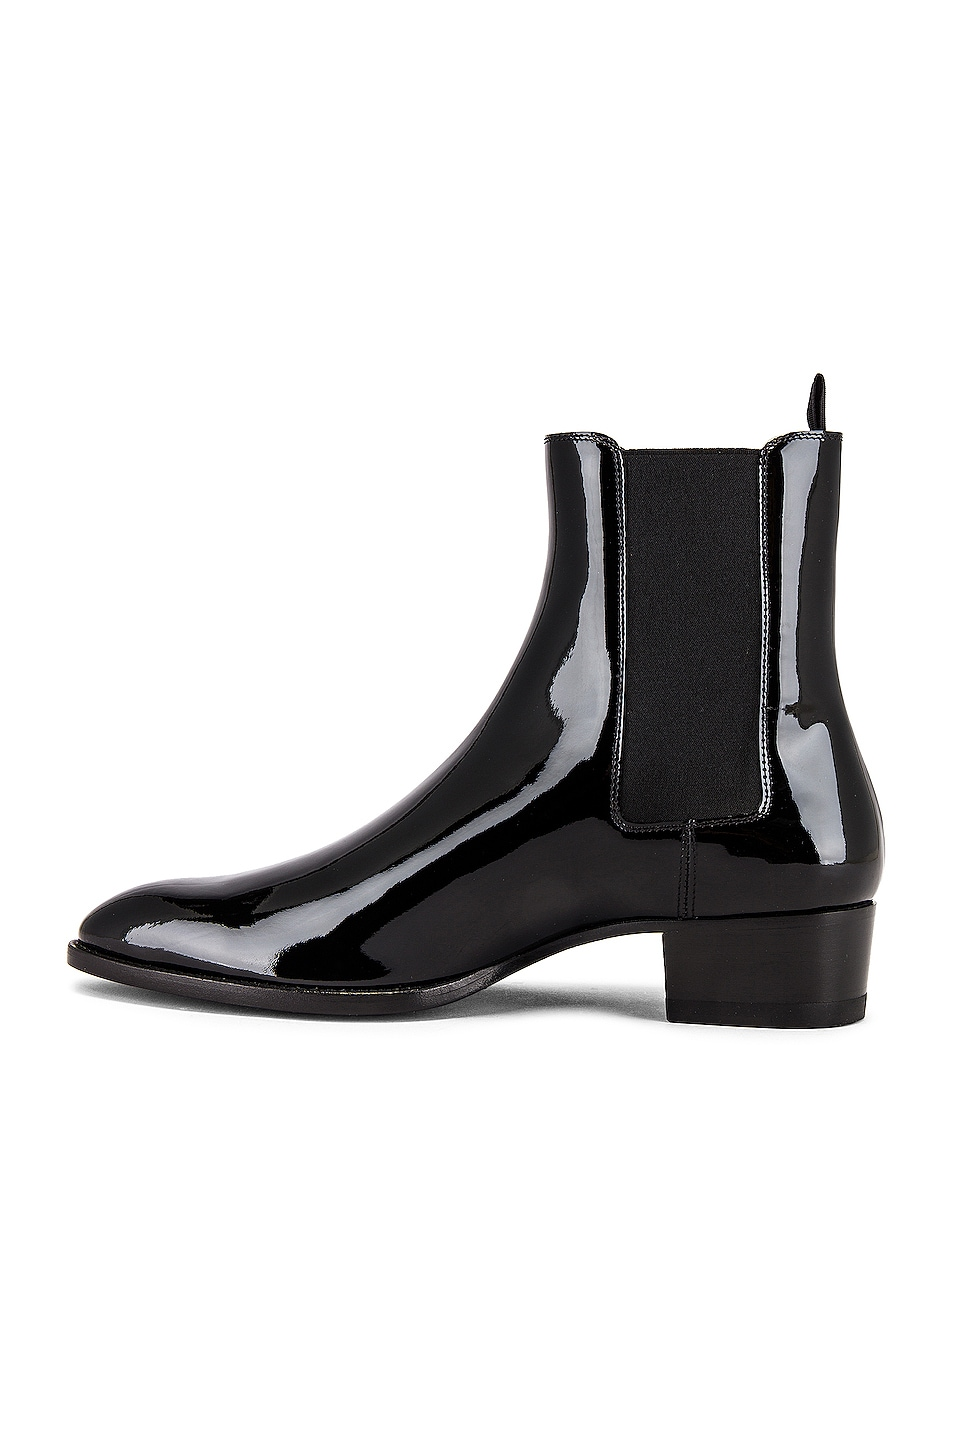 Image 5 of Saint Laurent Leather Boots in Black